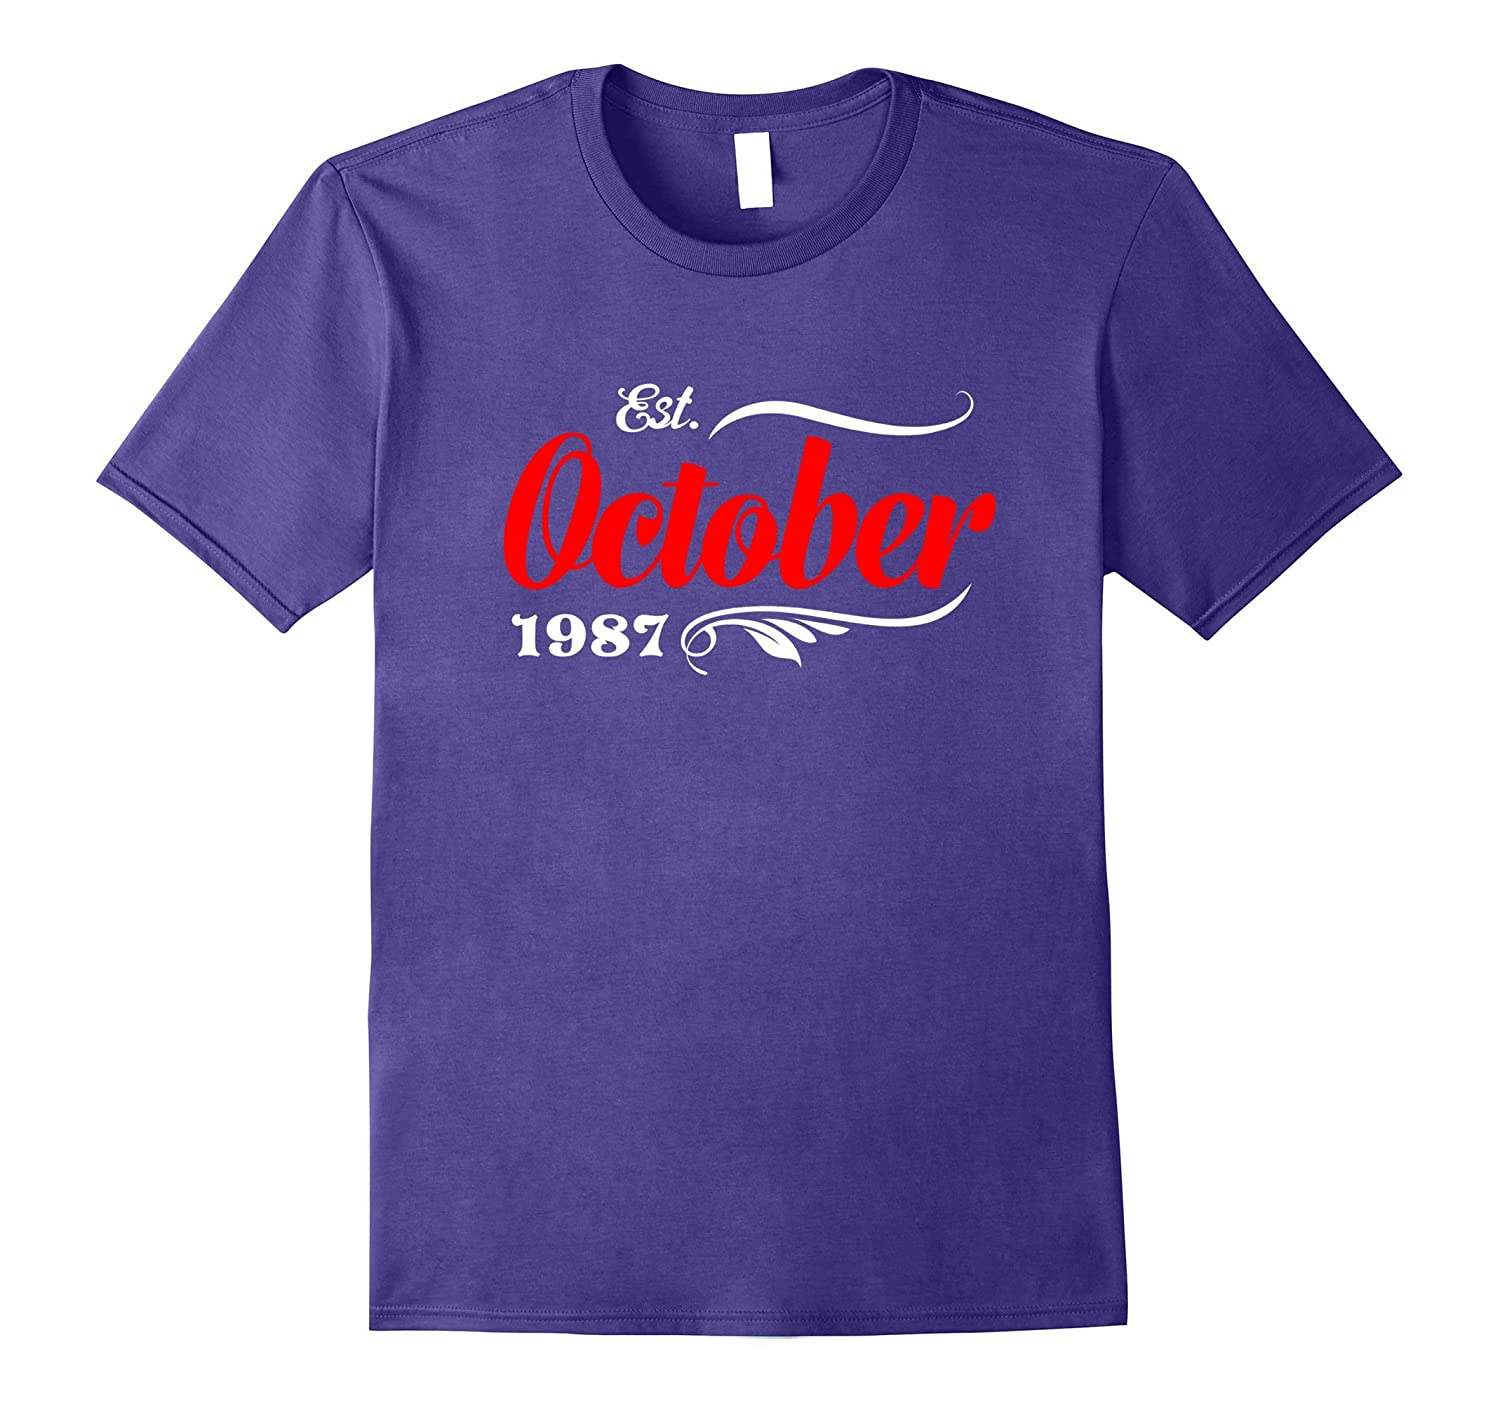 30th Birthday Gifts - Est October 1987 T-Shirt-T-Shirt